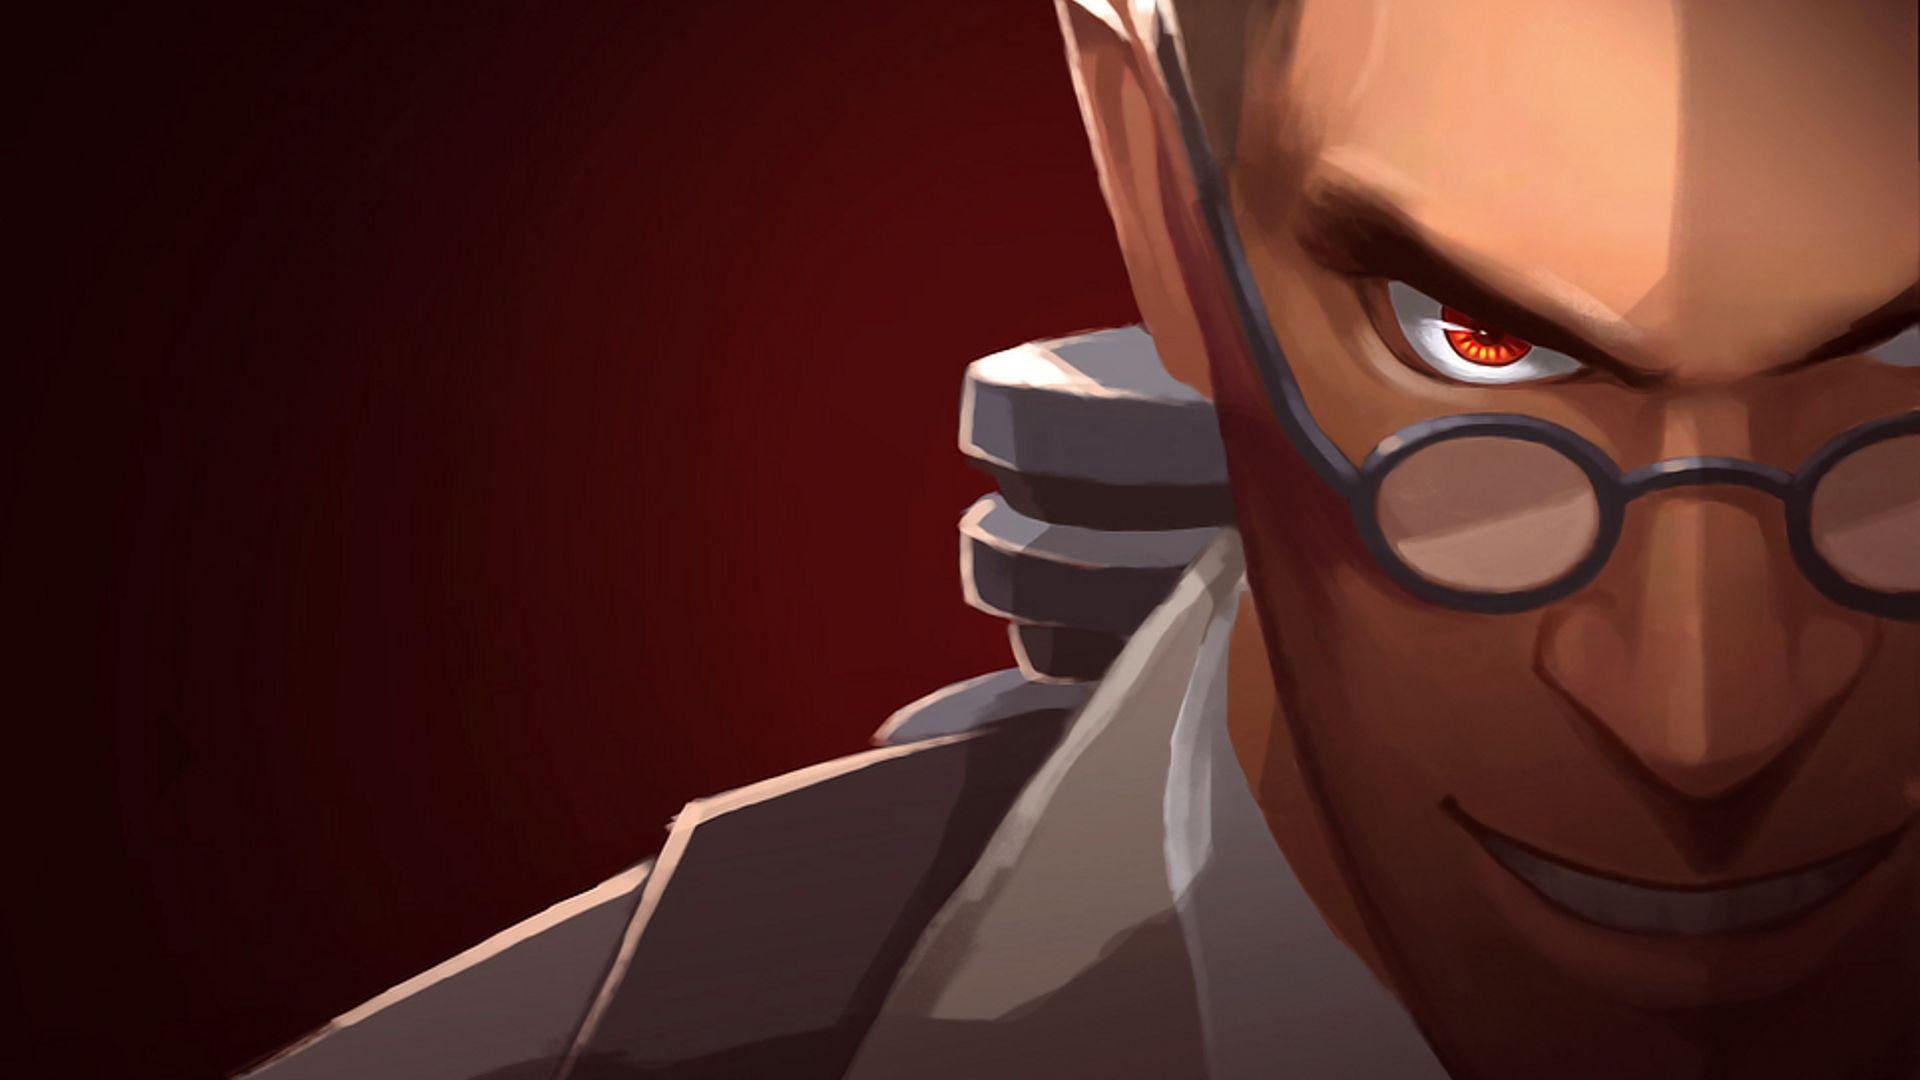 Team Fortress 2 Medic Wallpapers Wallpaper Cave